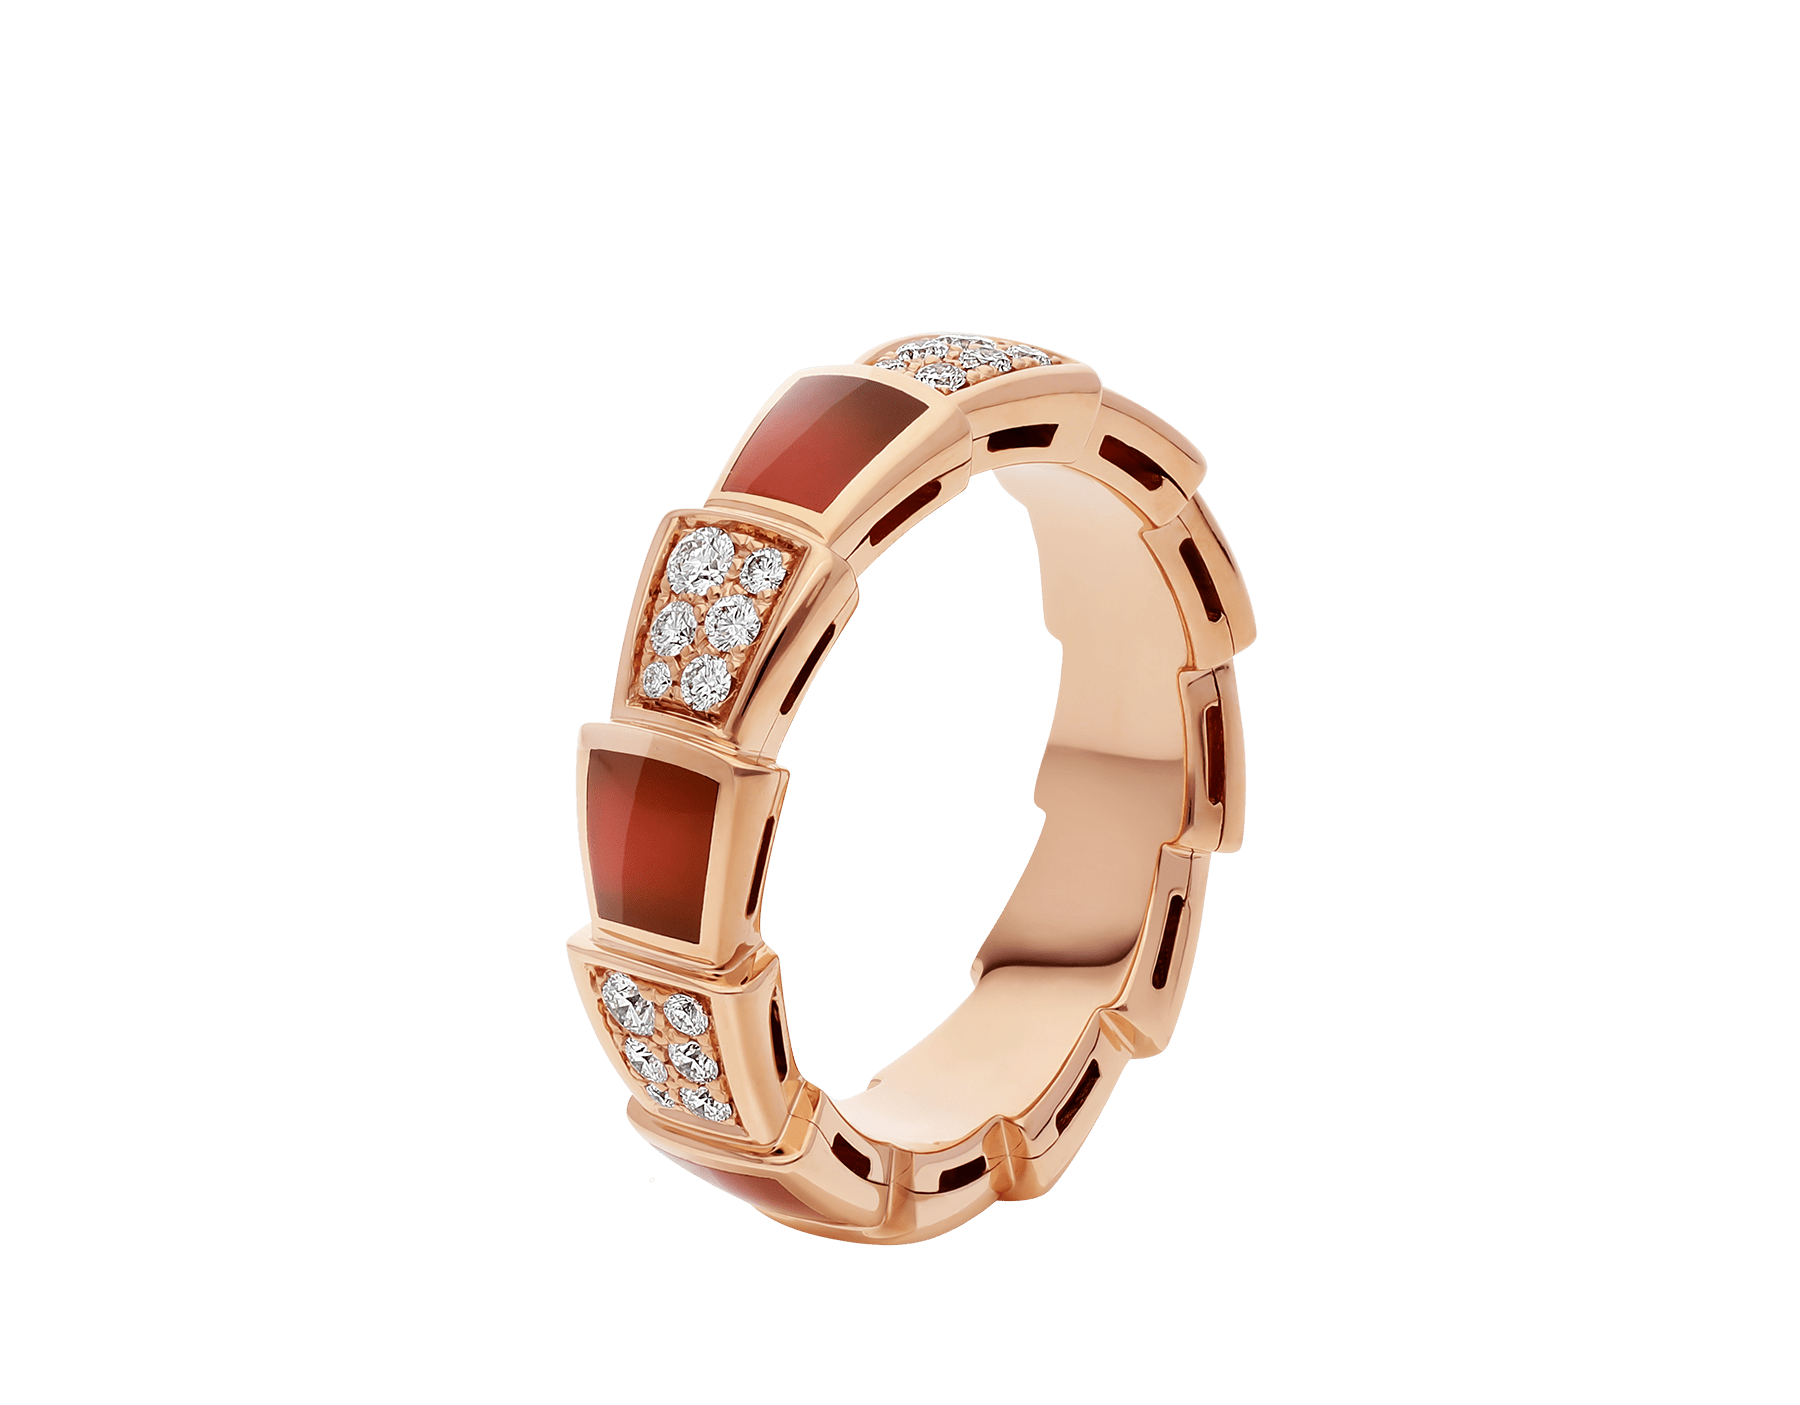 Serpenti Viper band ring in 18 kt rose gold set with carnelian elements and pavé diamonds (0.43 ct). AN857927 image 1